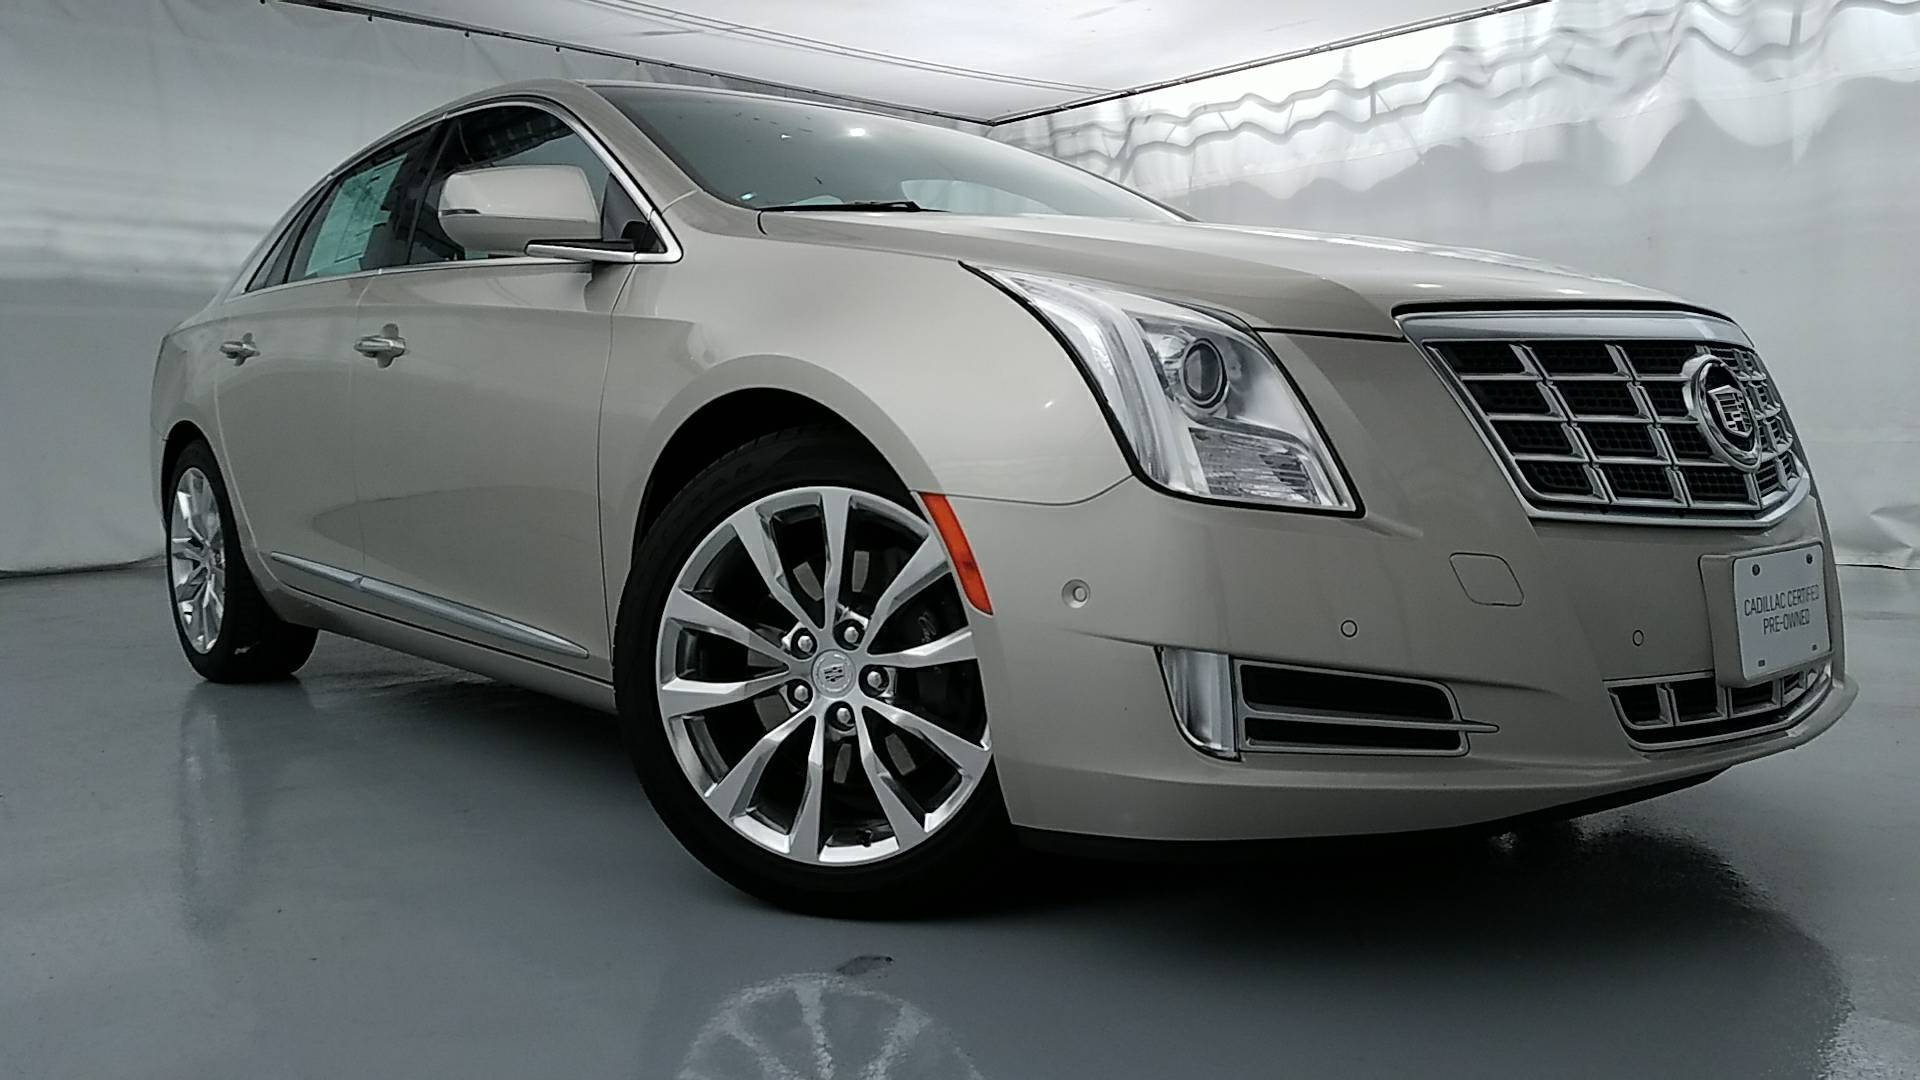 Certified Cadillac XTS Vehicles for Sale for Hammond to New Orleans